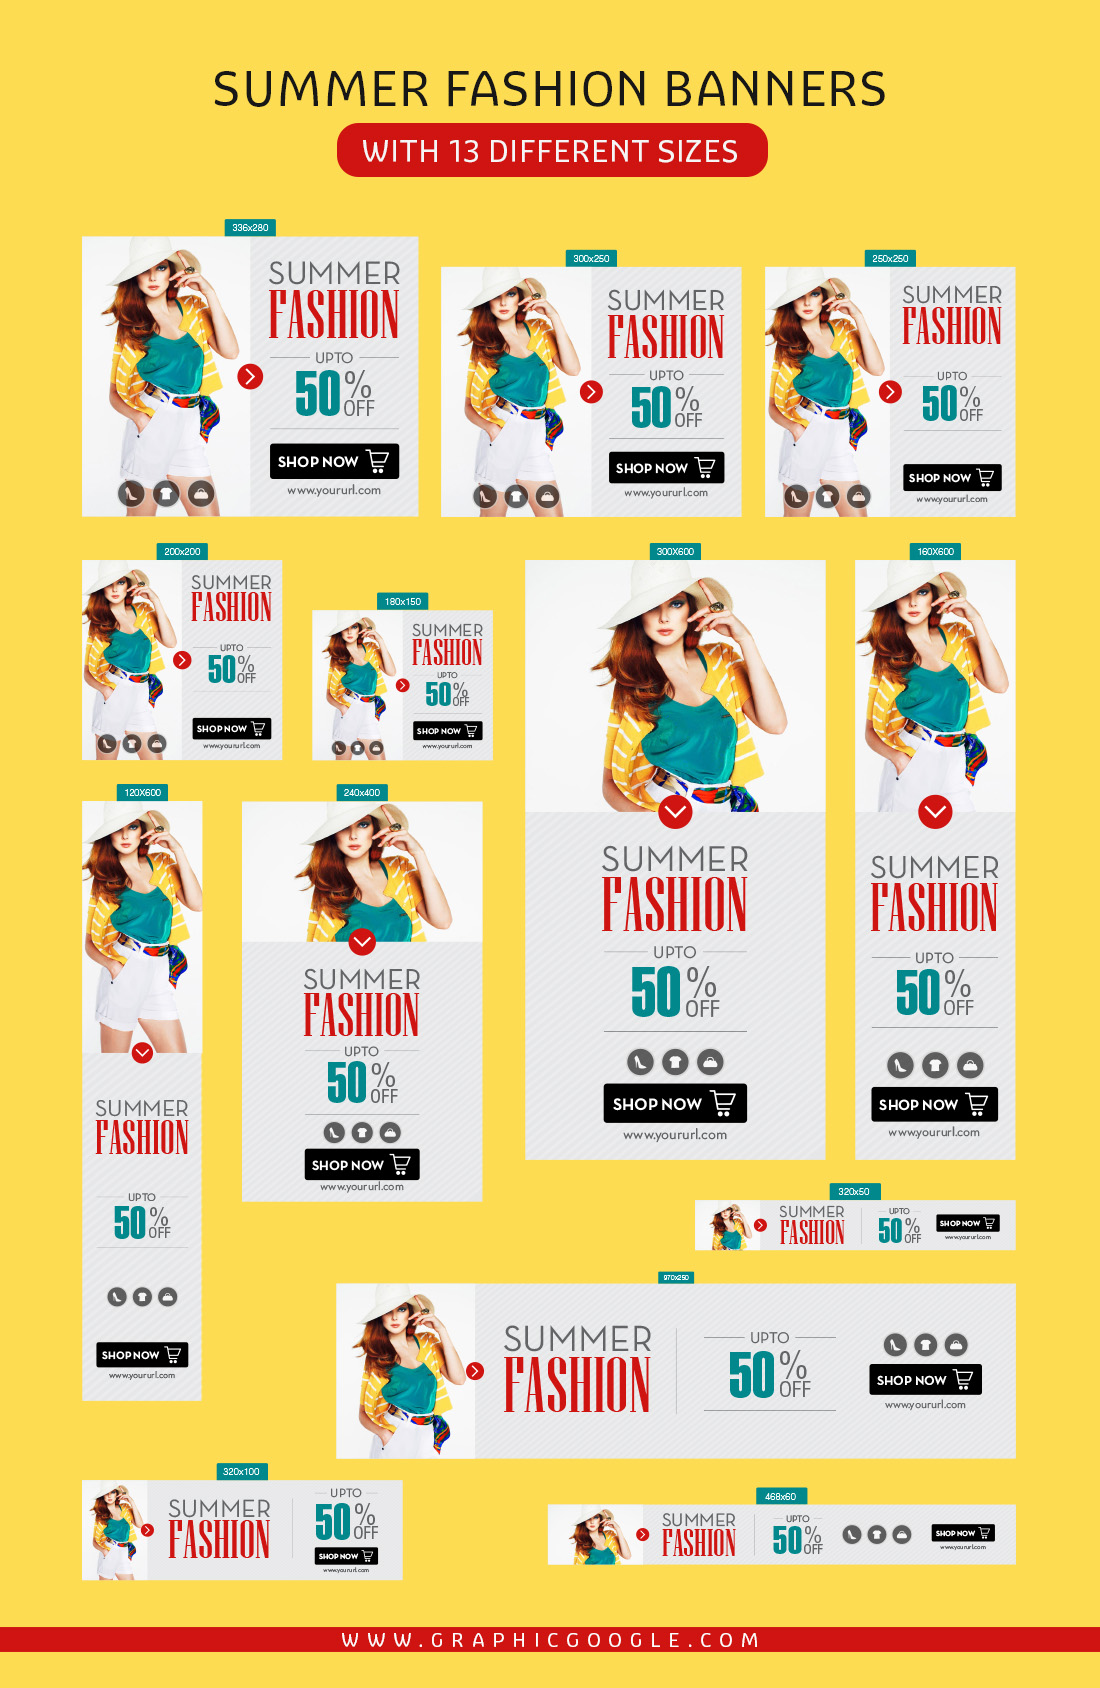 Free Summer Fashion Banners with 13 Different Sizes-1